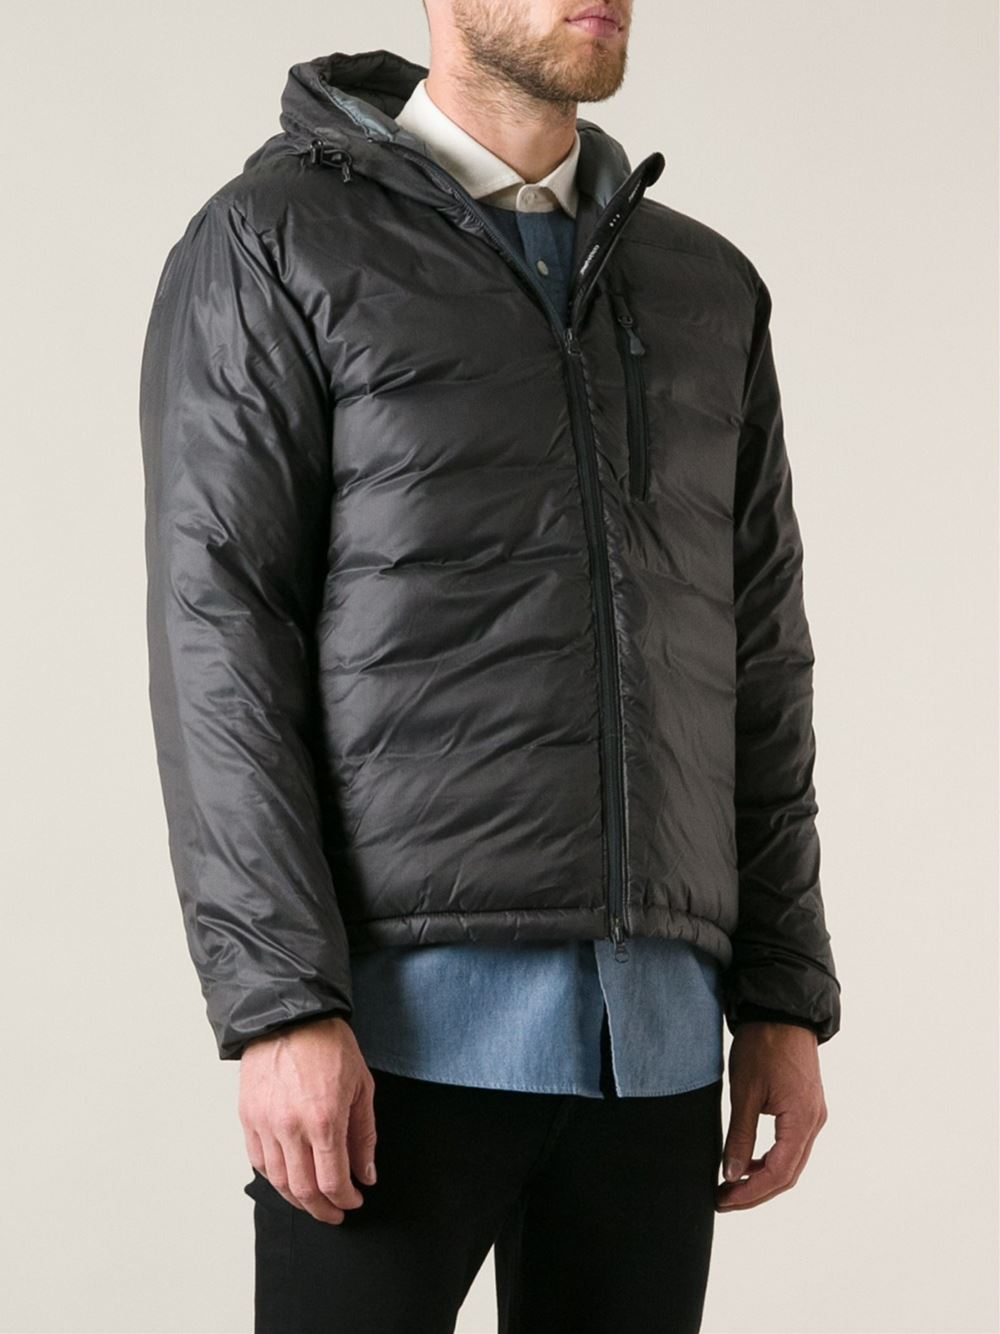 7ebc5400df25 ... where to buy lyst canada goose lodge hoody padded coat in gray for men  7c7dc dd974